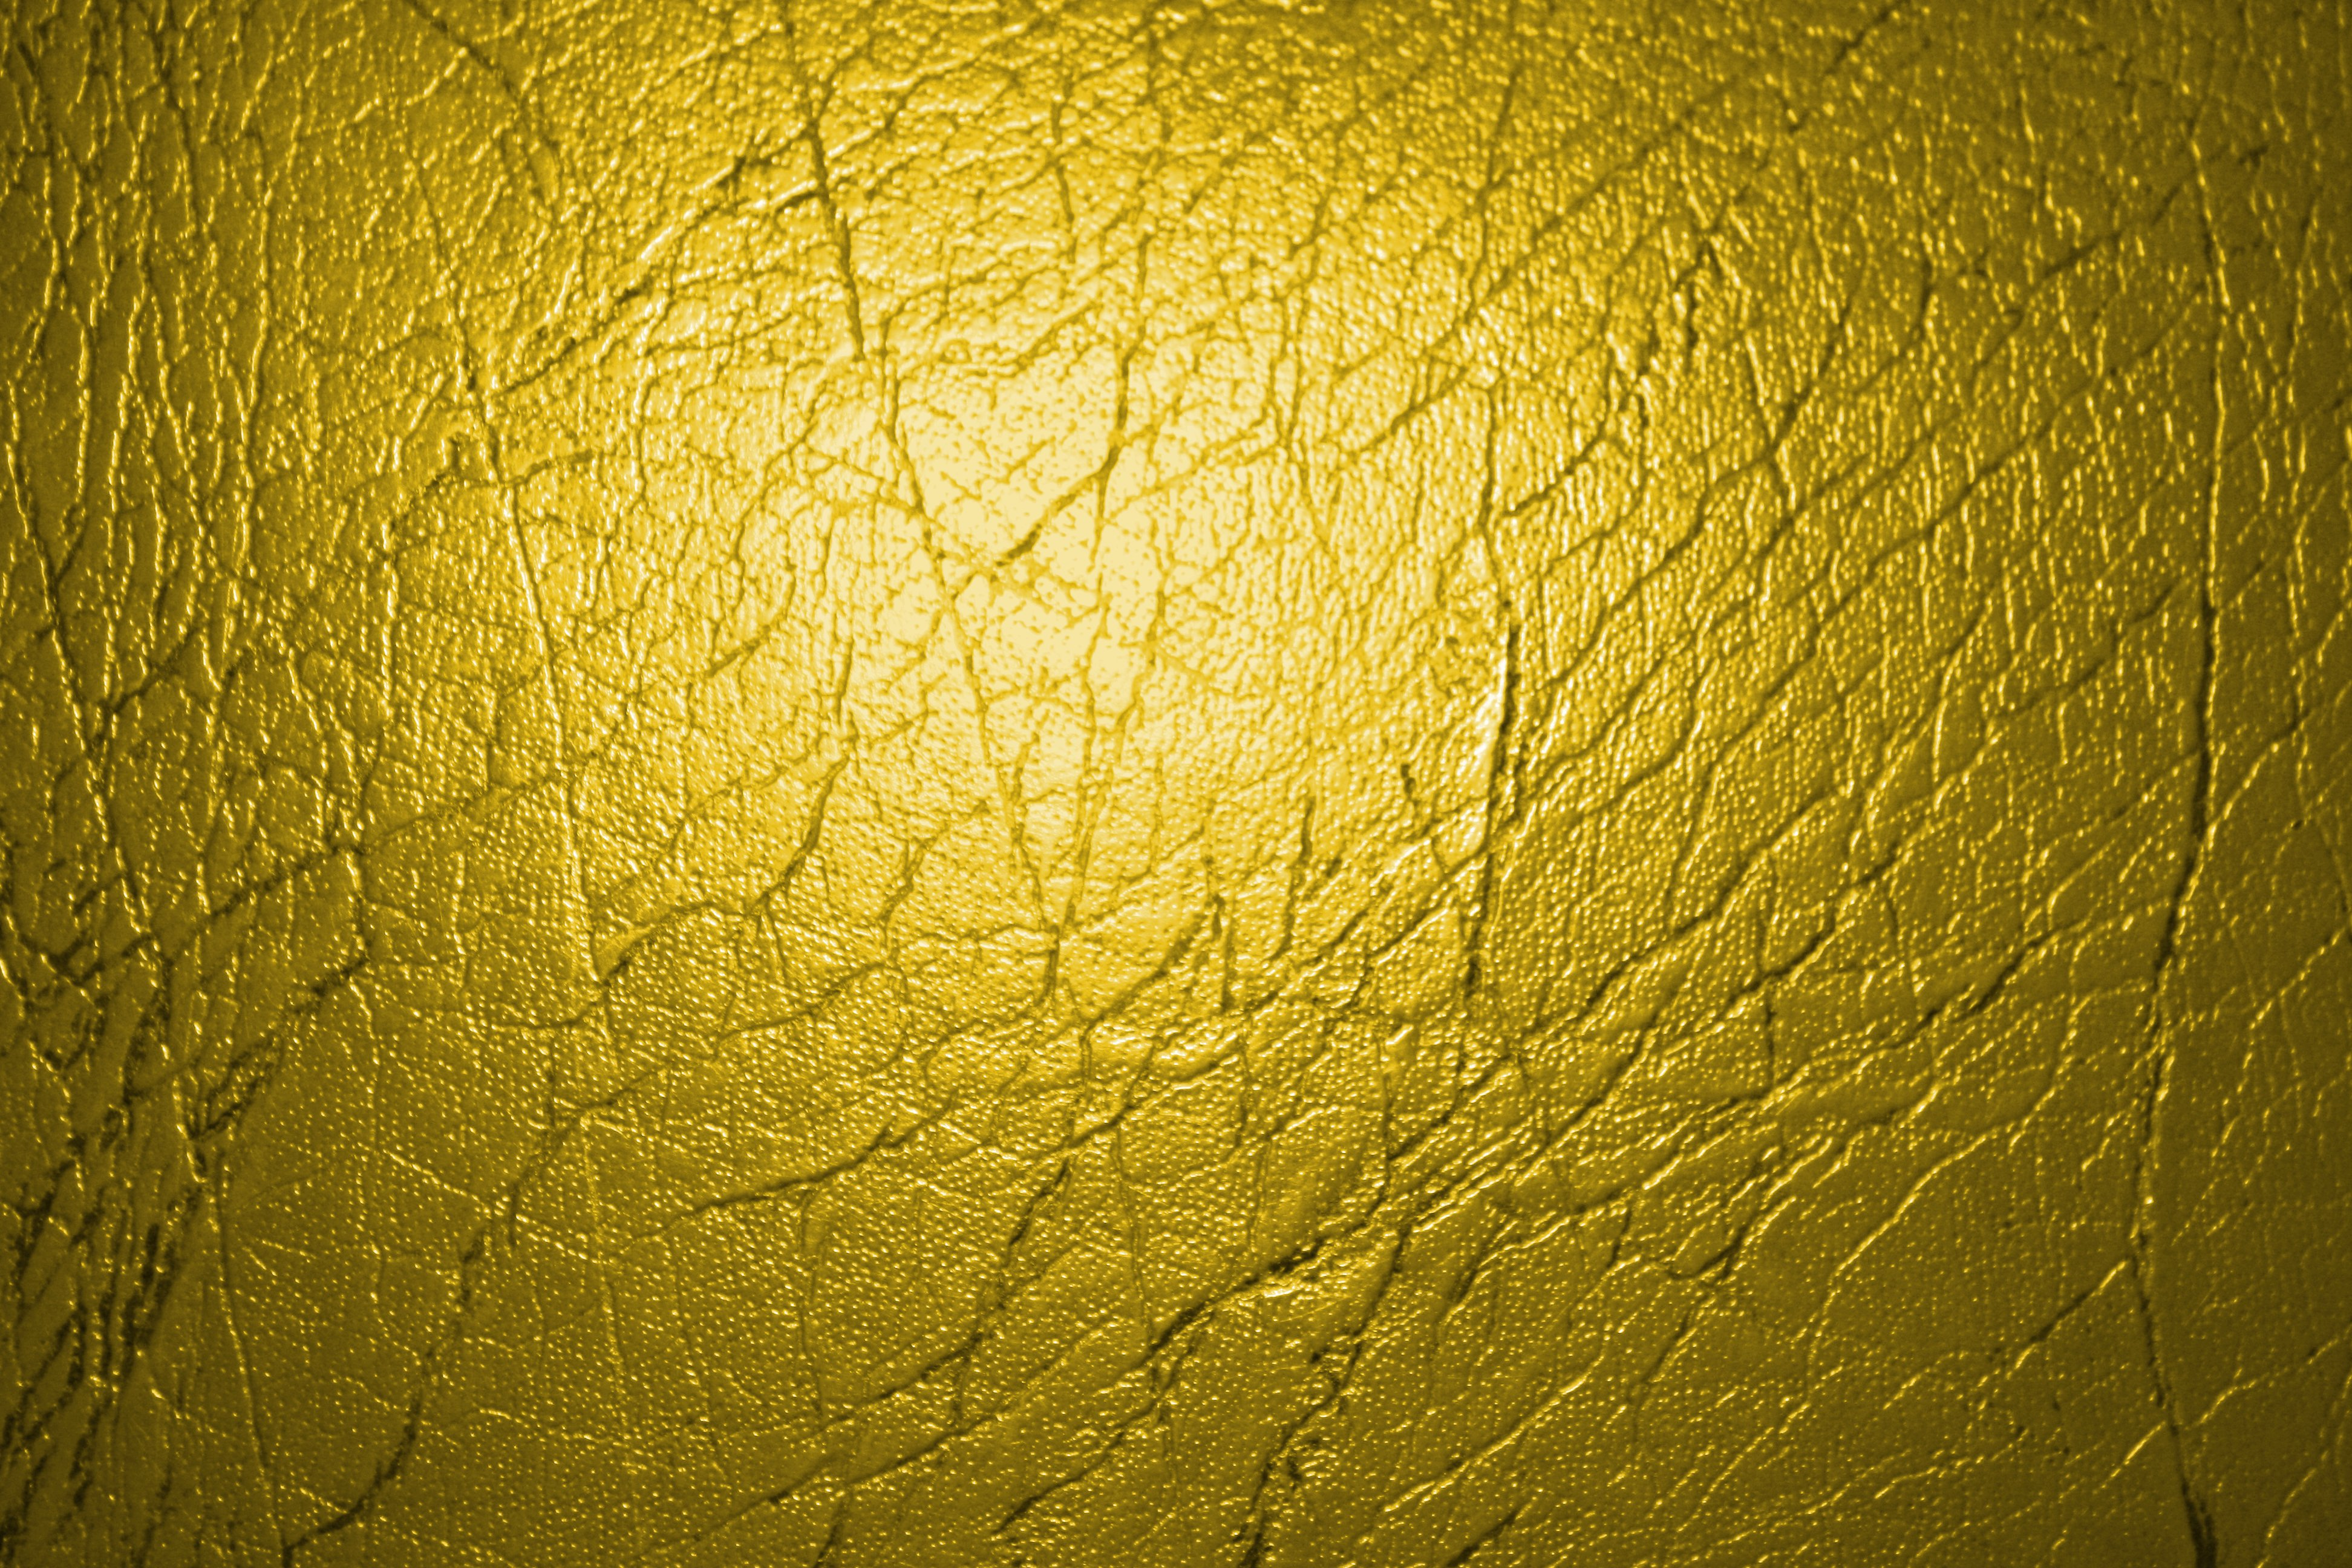 gold background photoshop - photo #5